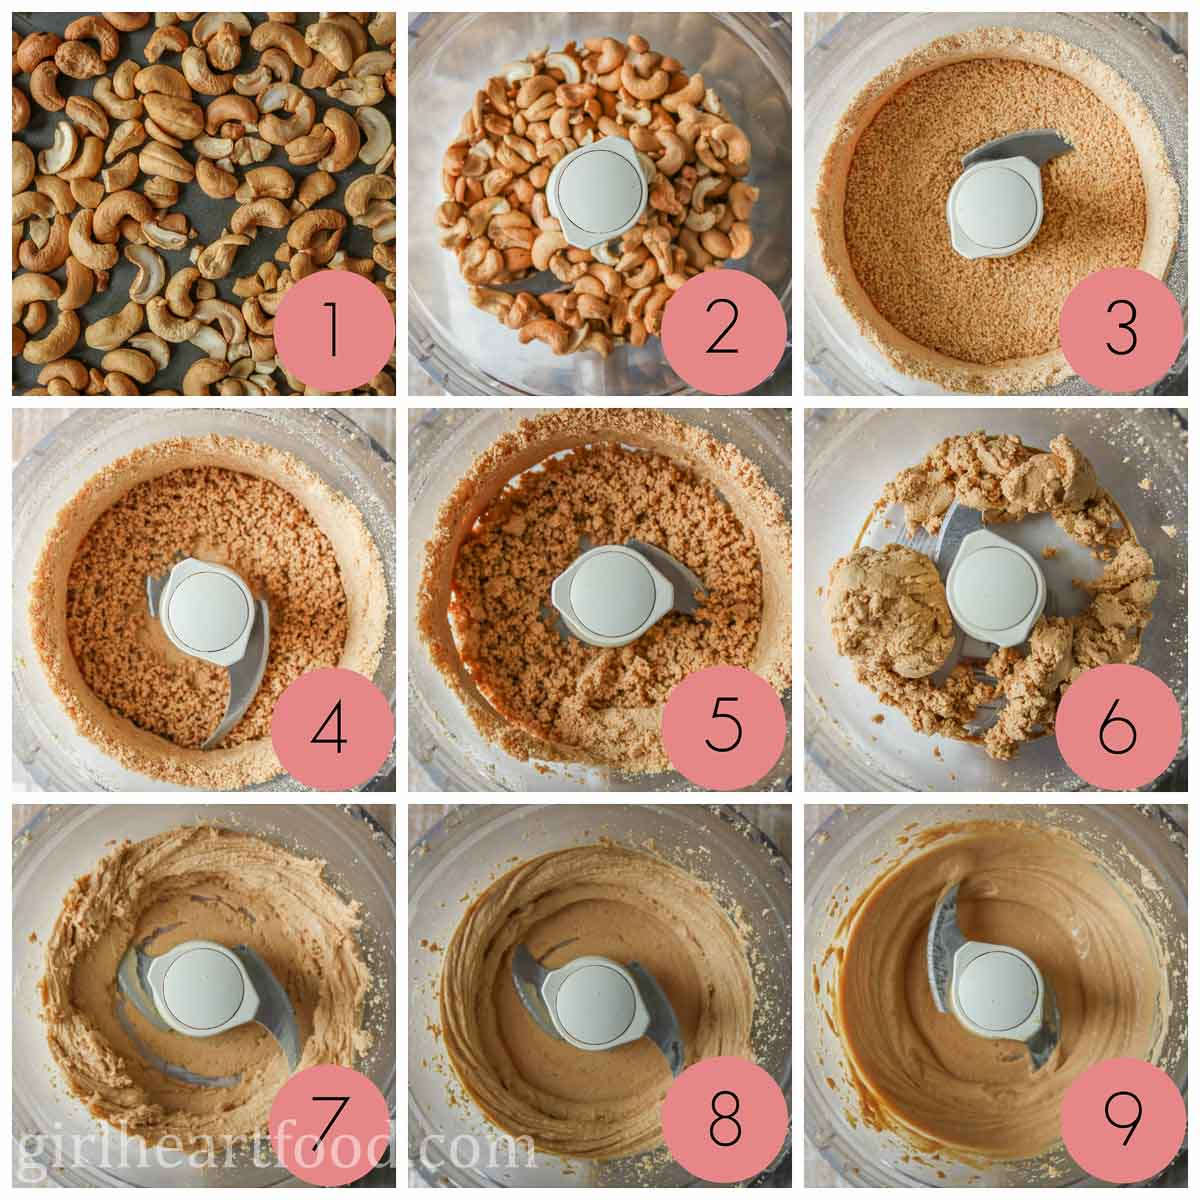 Collage of steps to make a homemade cashew butter recipe.